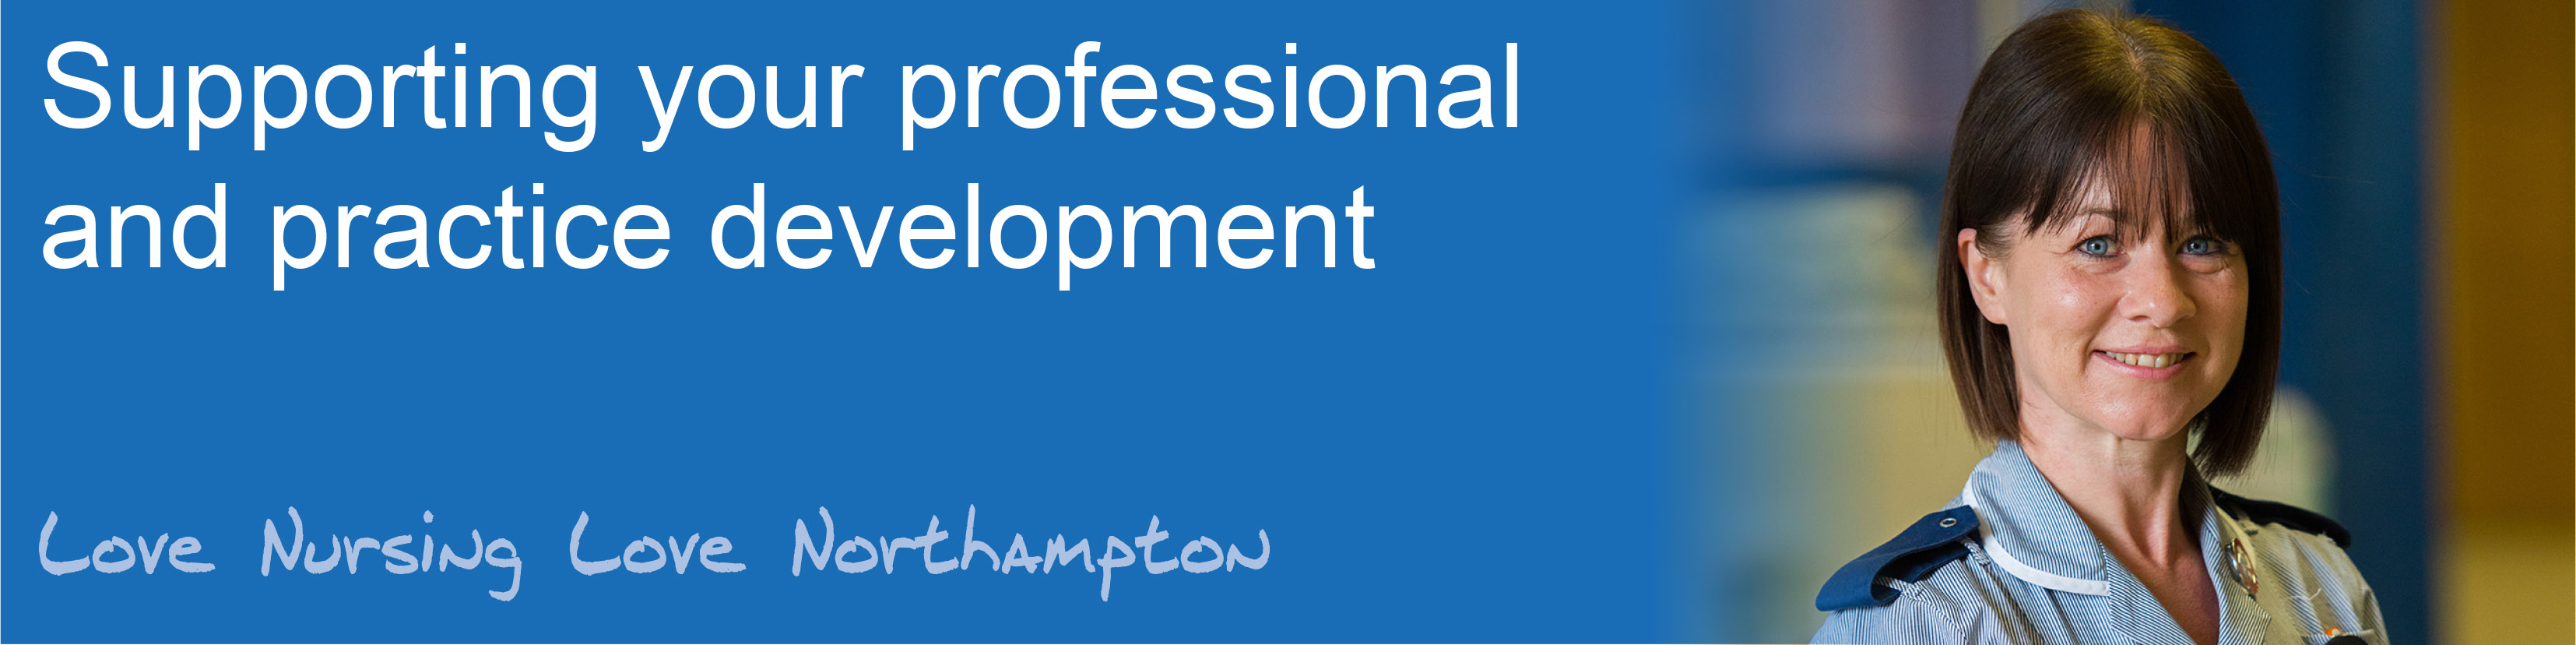 Supporting your professional and practice development. Love nursing, love Northampton